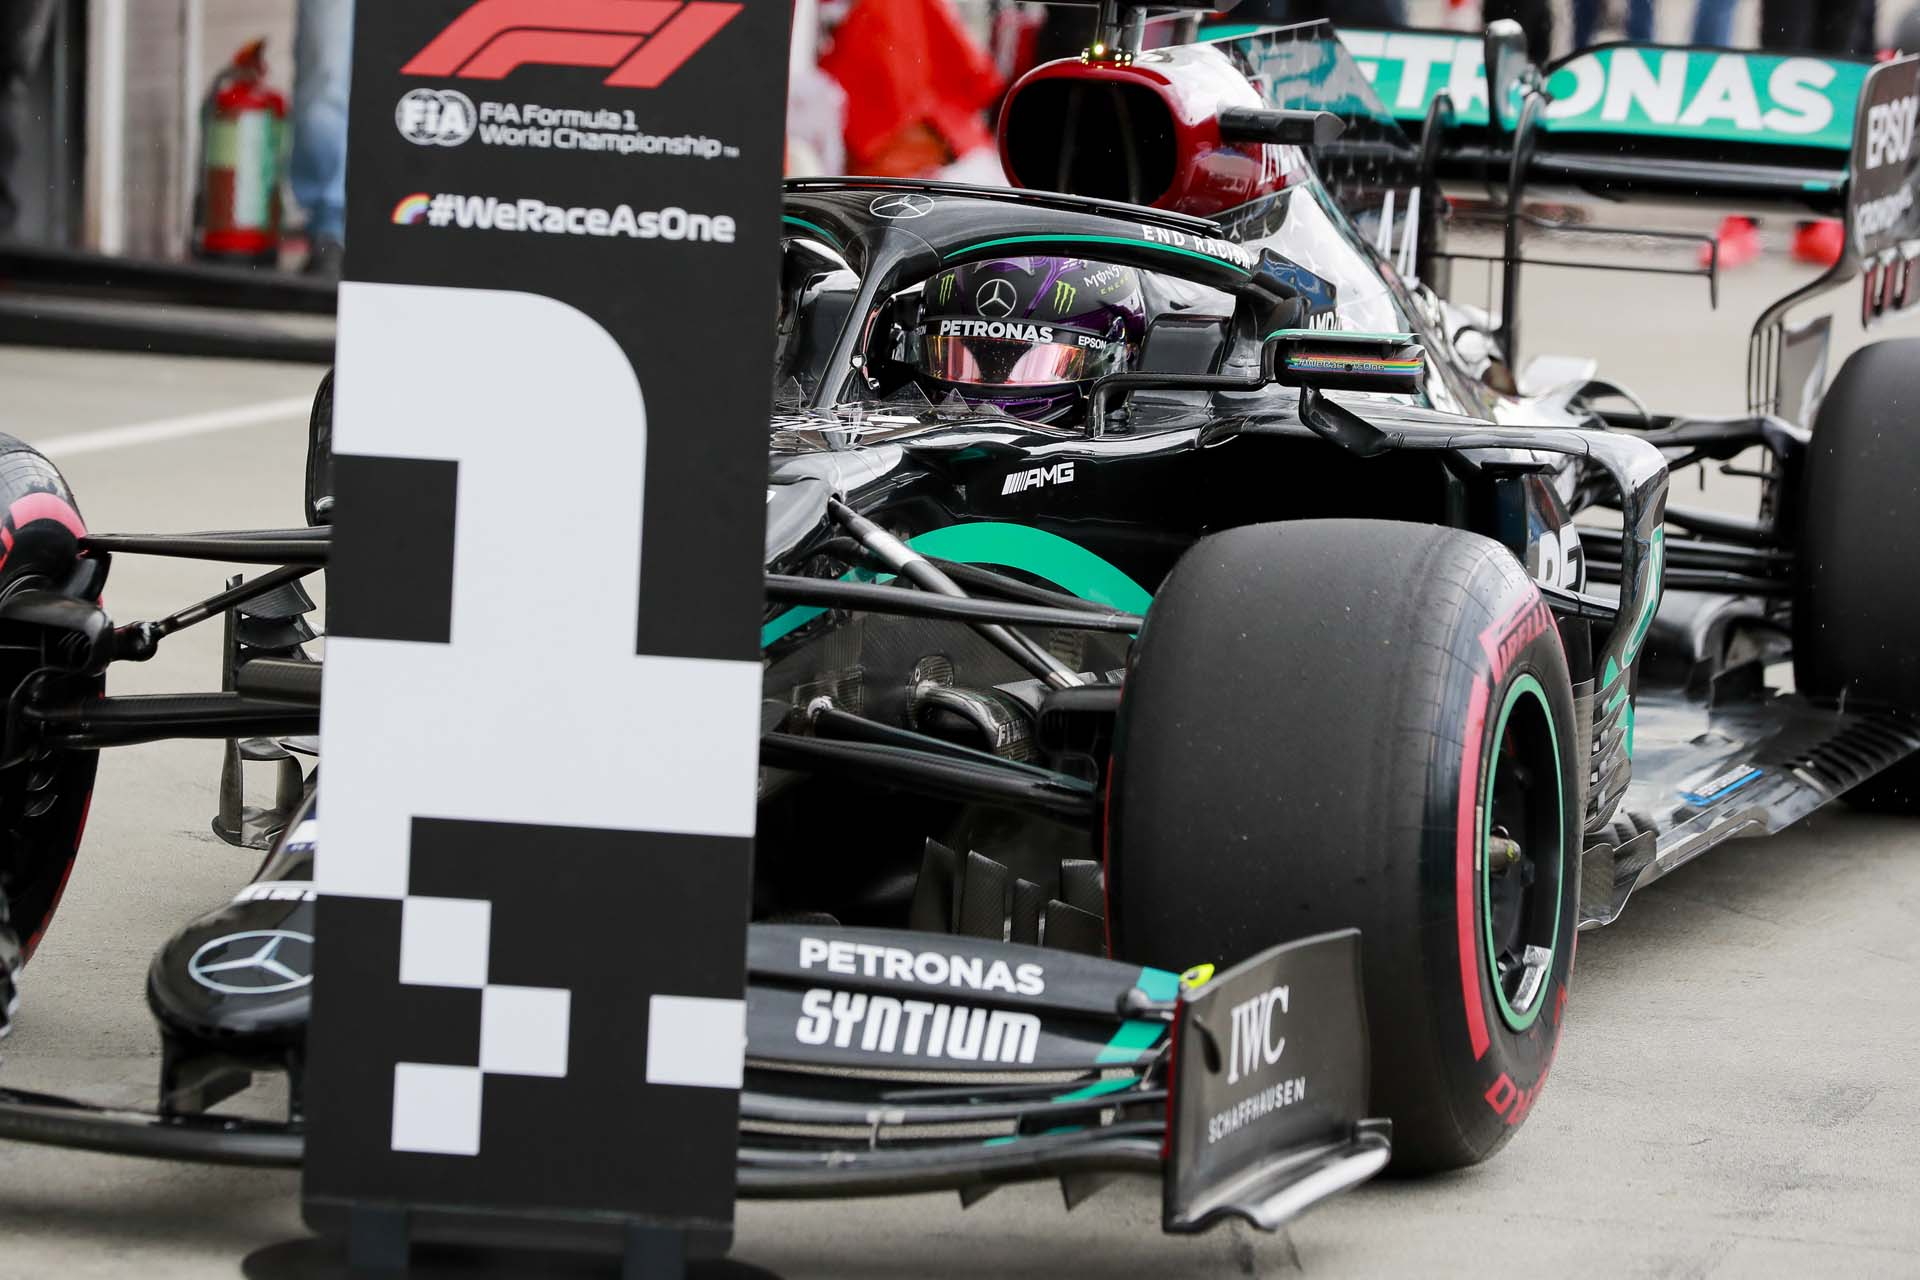 2020 Hungarian Grand Prix, Saturday - LAT Images